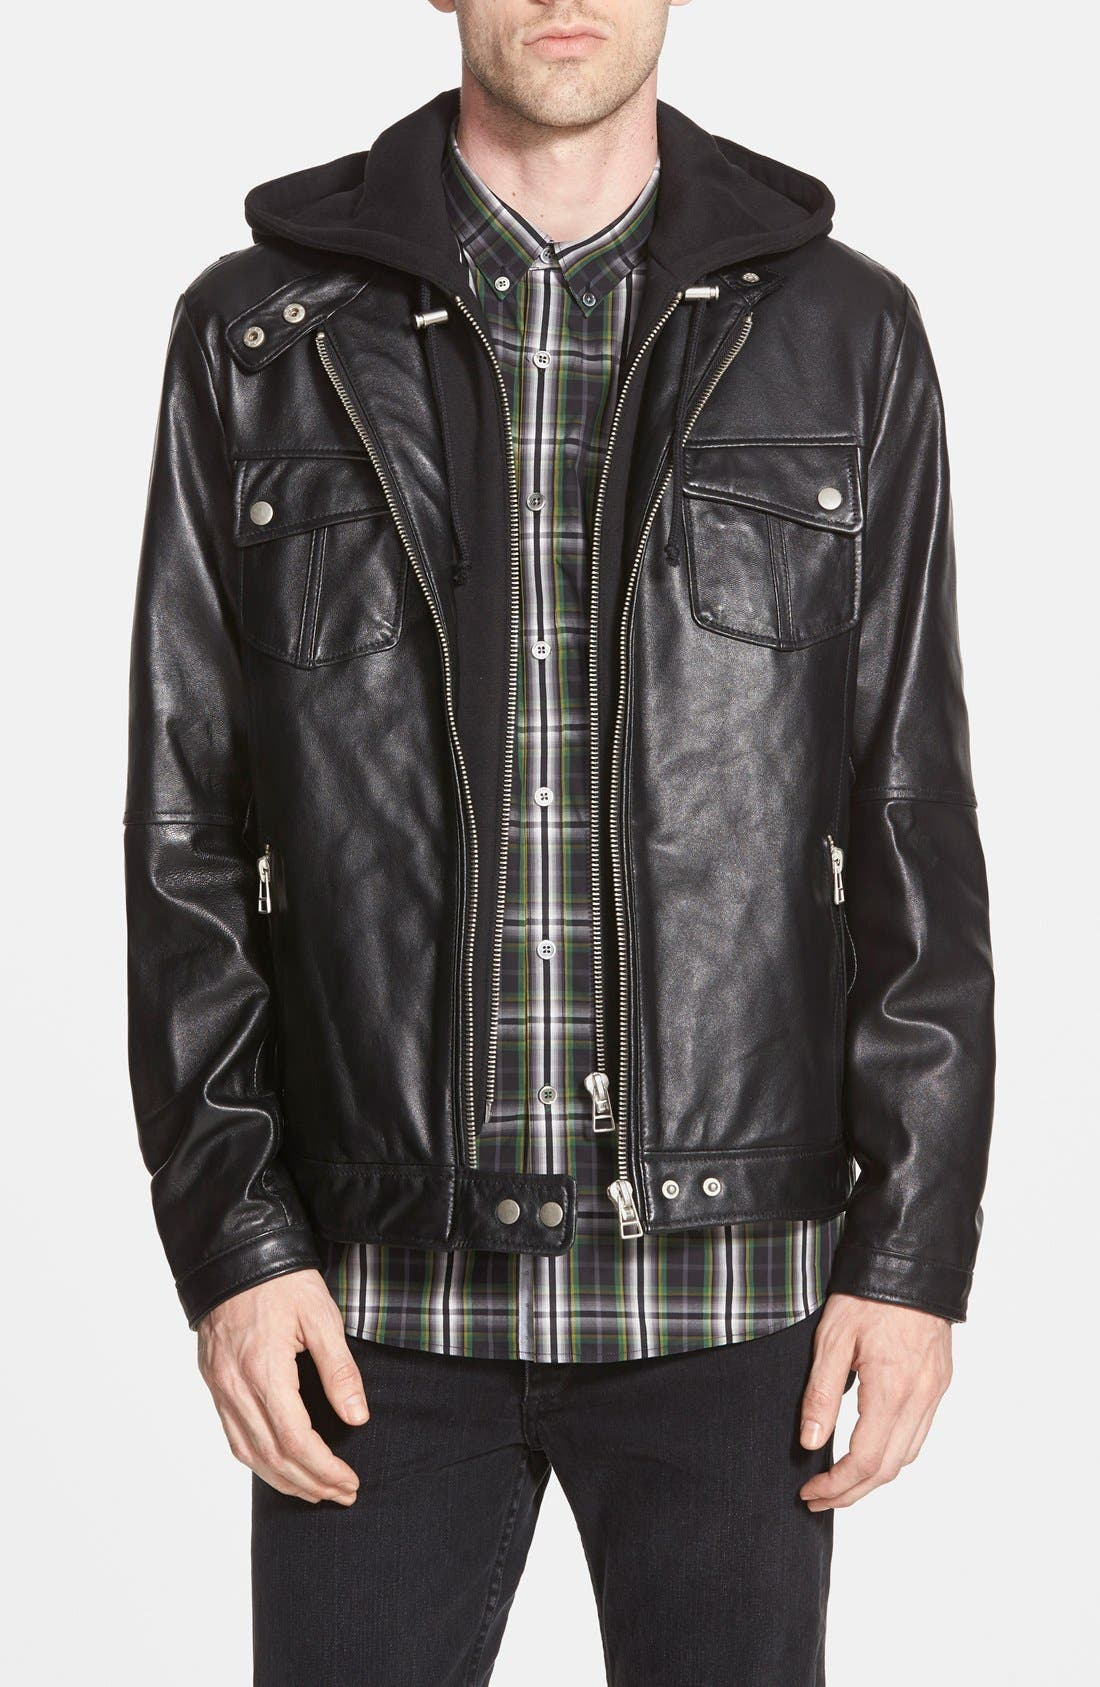 7 DIAMONDS 'Los Angeles' Trim Fit Leather Moto Jacket with Inset Hood, Main, color, 001